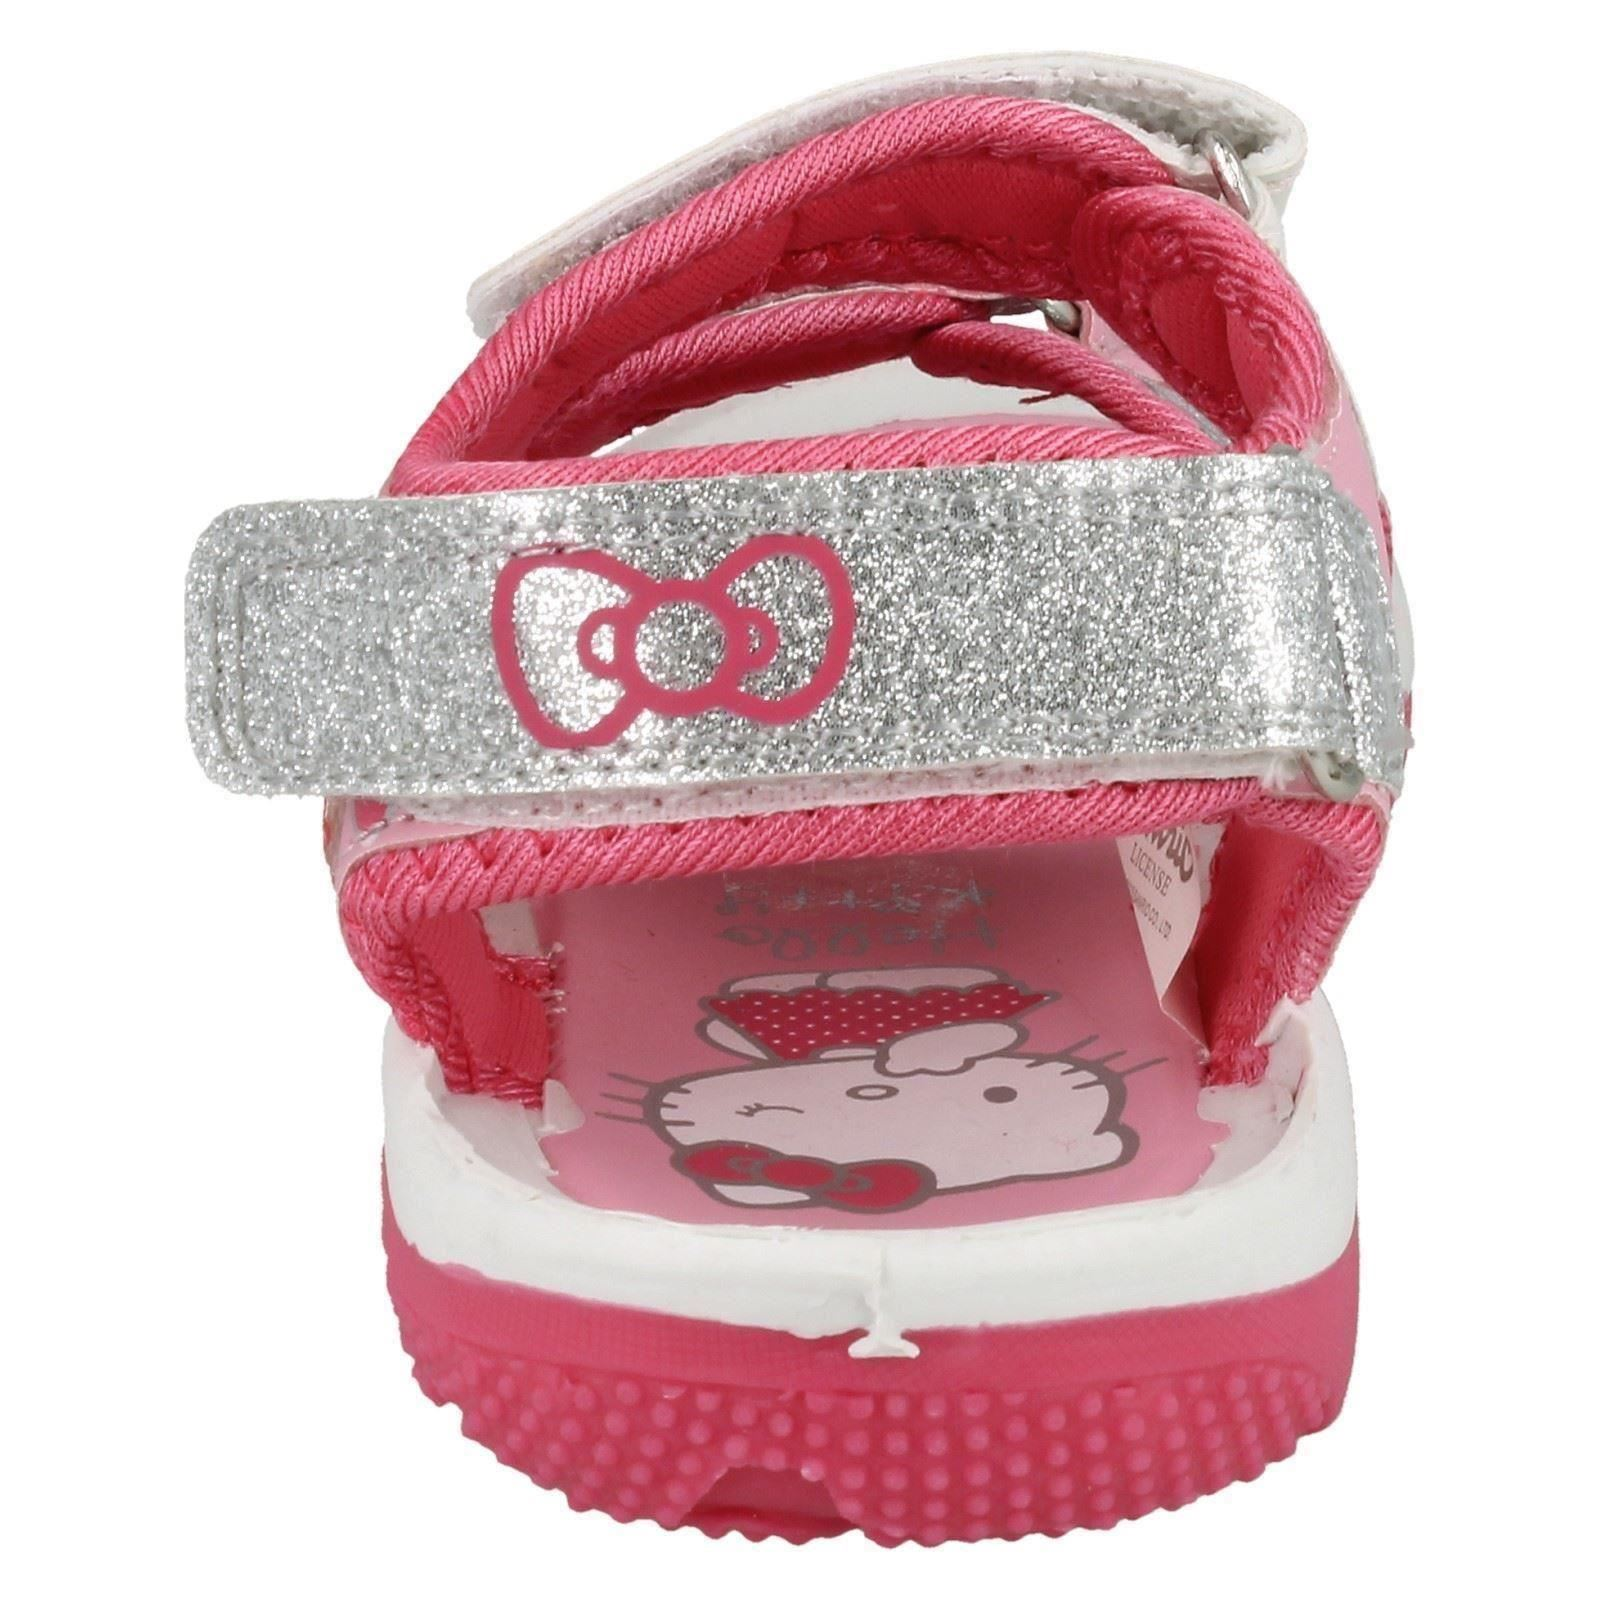 Chicas Hello Kitty 'copete' Sandalia